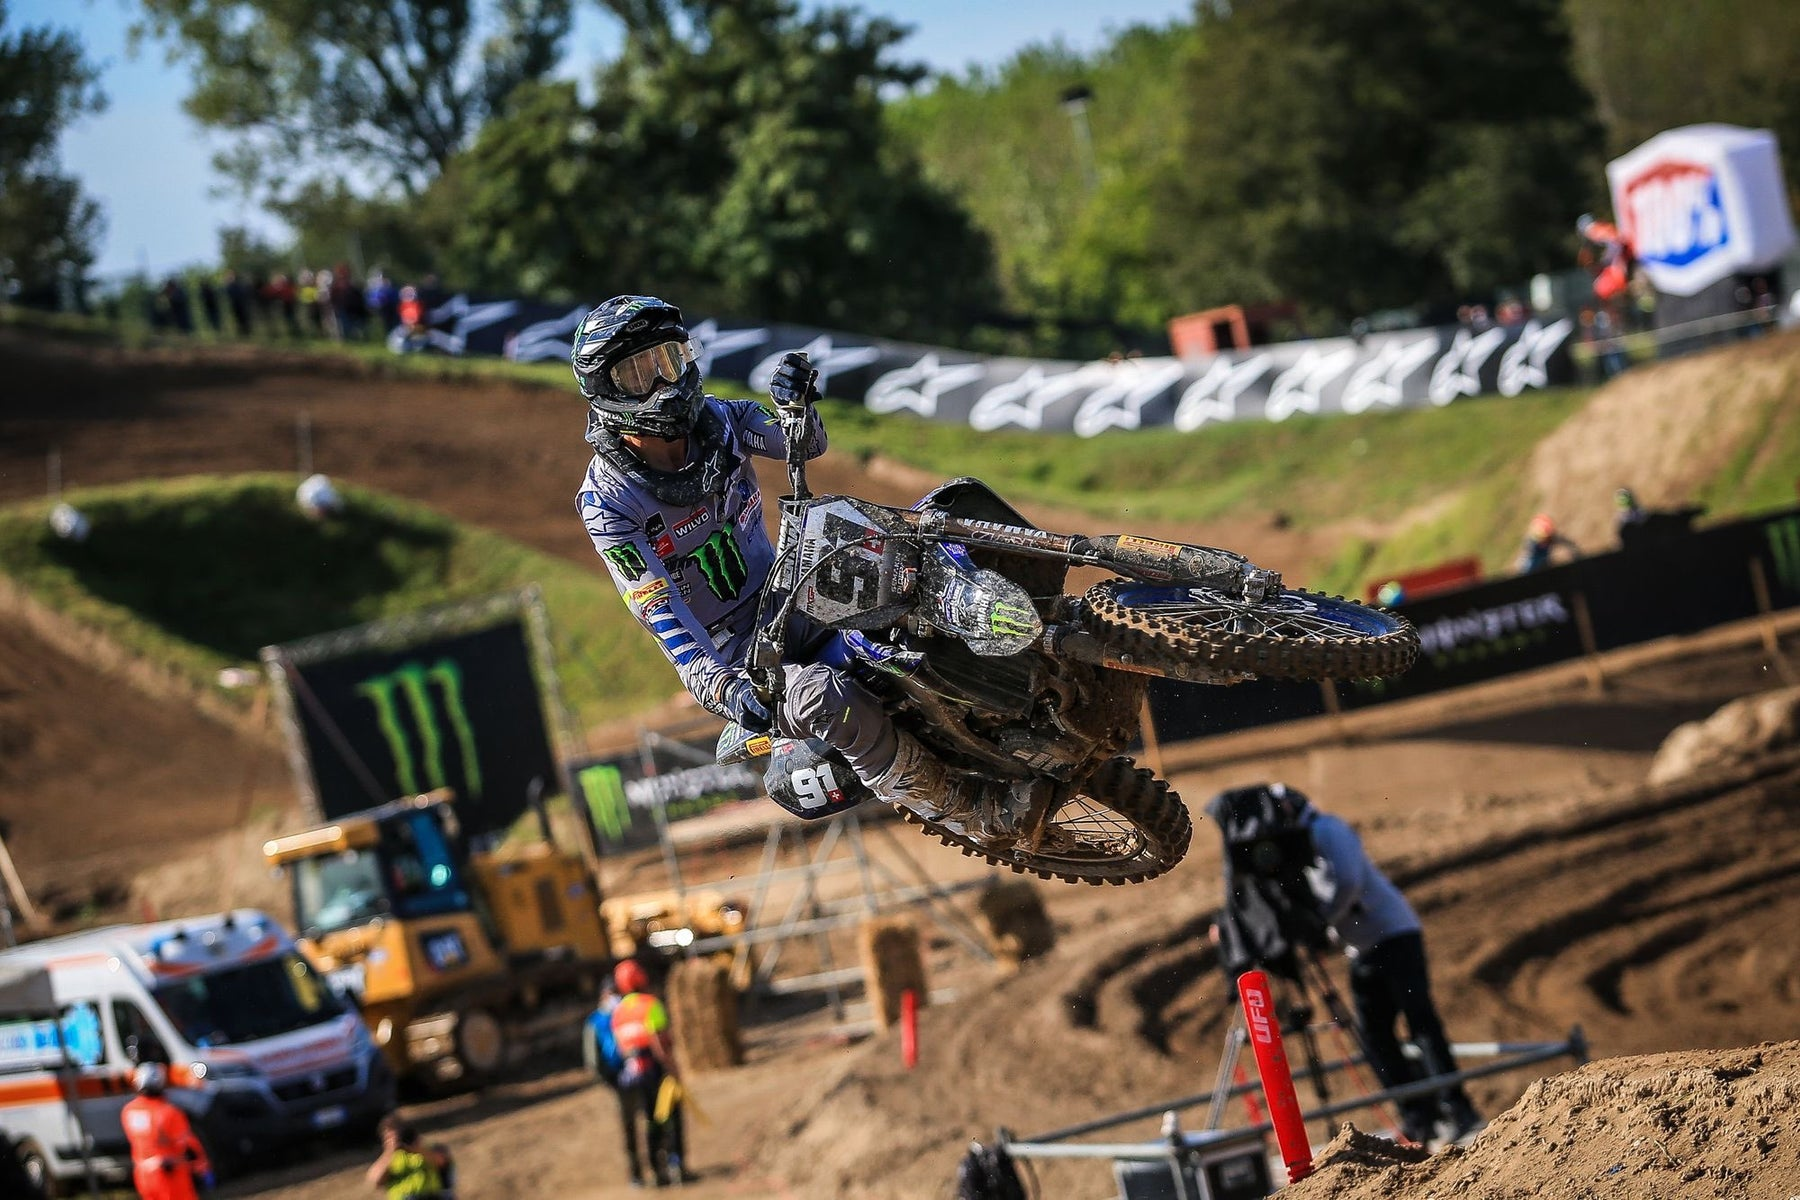 ALPINESTARS ONE, TWO AS JEREMY SEEWER TAKES FIRST OVERALL MXGP WIN AT MXGP OF LOMBARDIA, ITALY